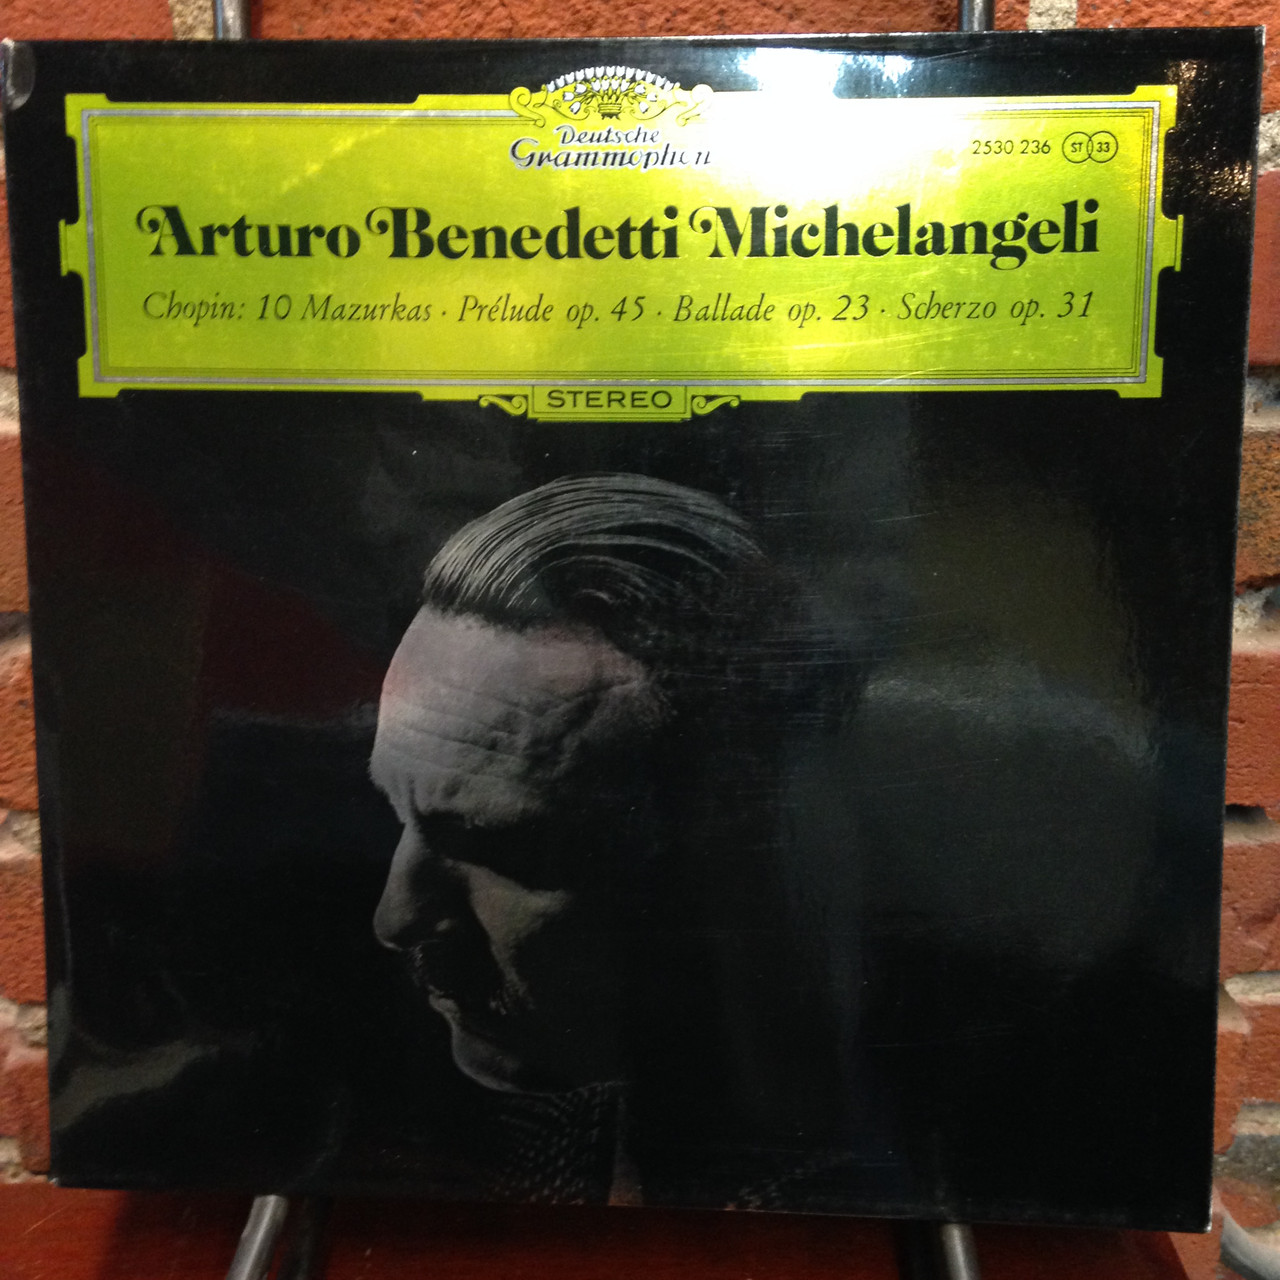 Chopin, Michelangeli LP